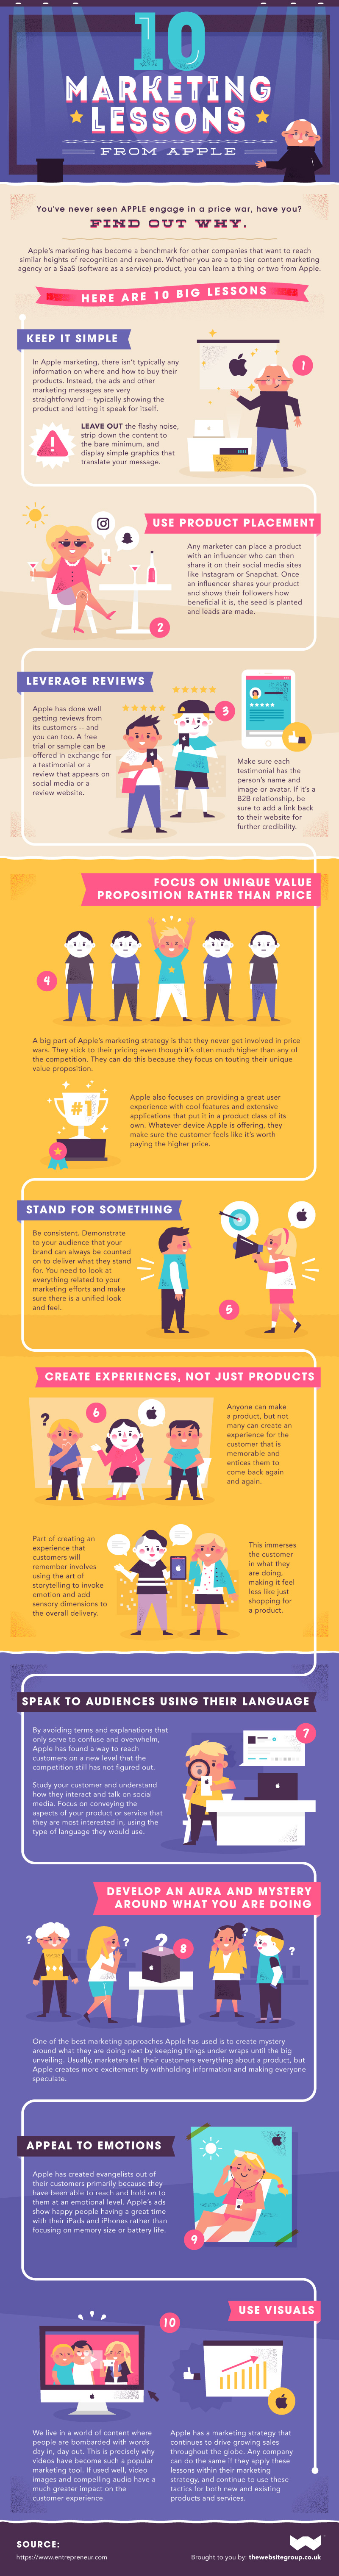 10 marketing lesons from apple infographic